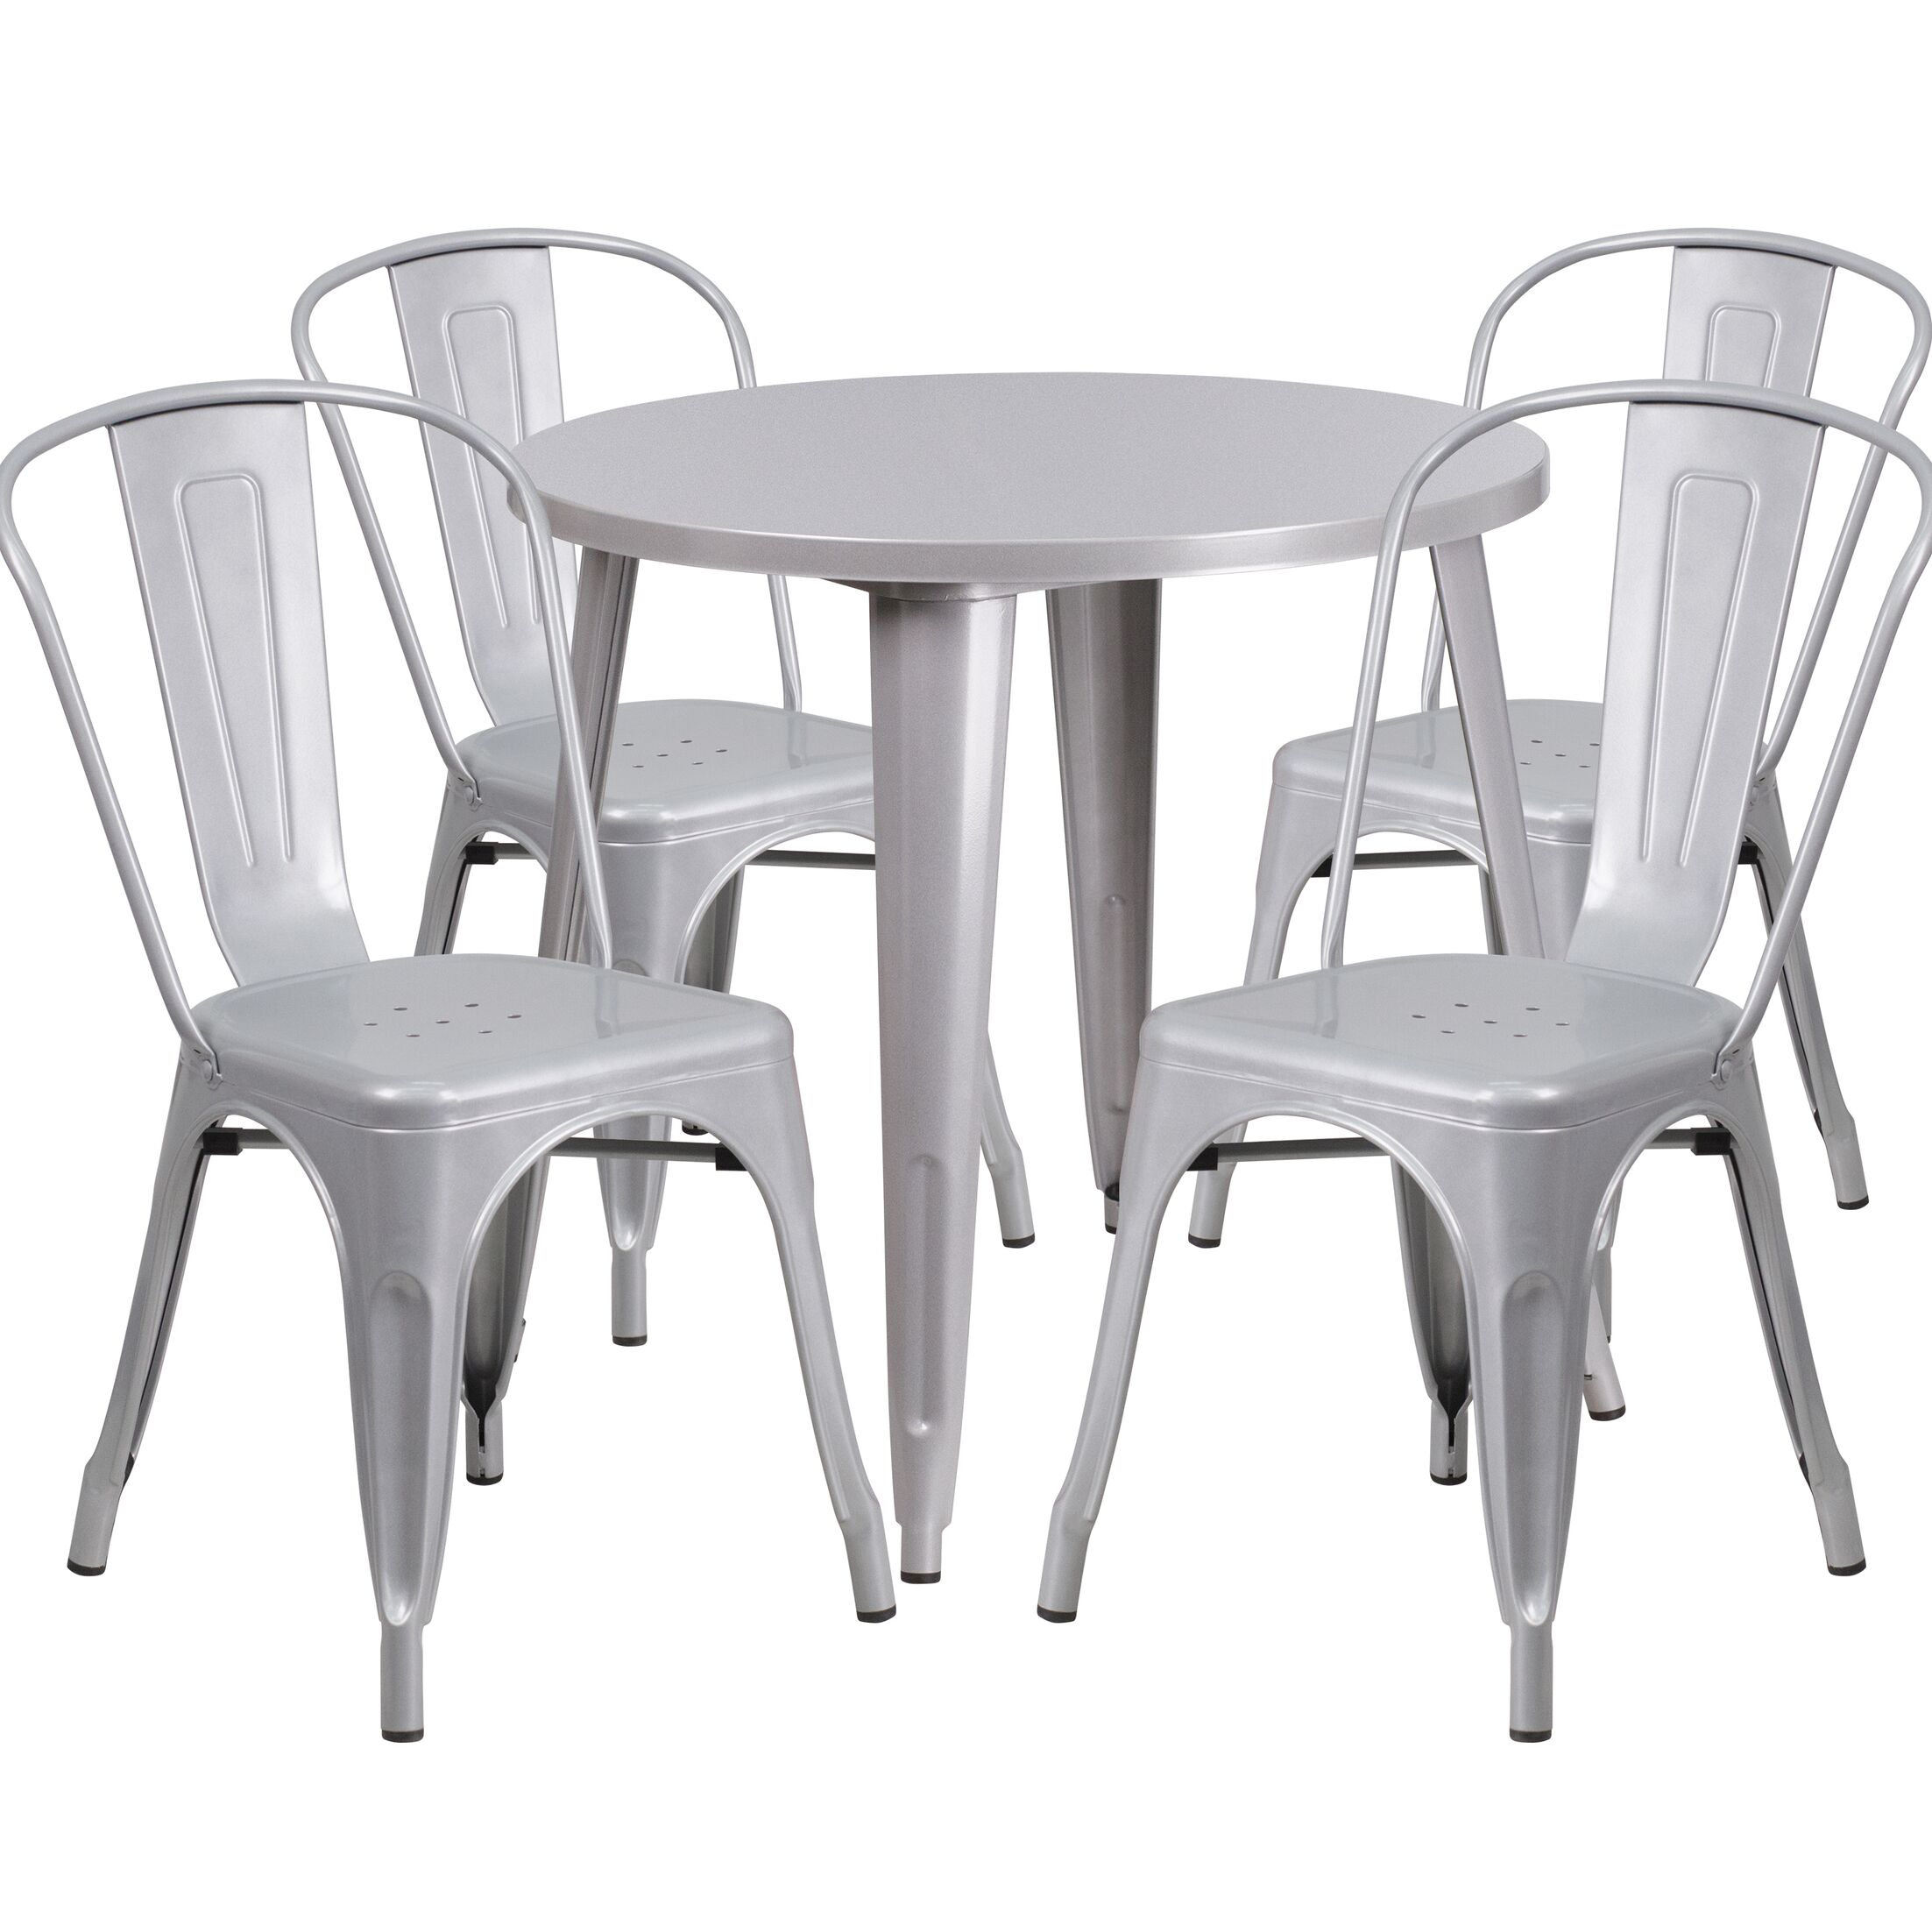 Chamblee Metal Indoor/Outdoor 5 Piece Dining Set Finish: Silver